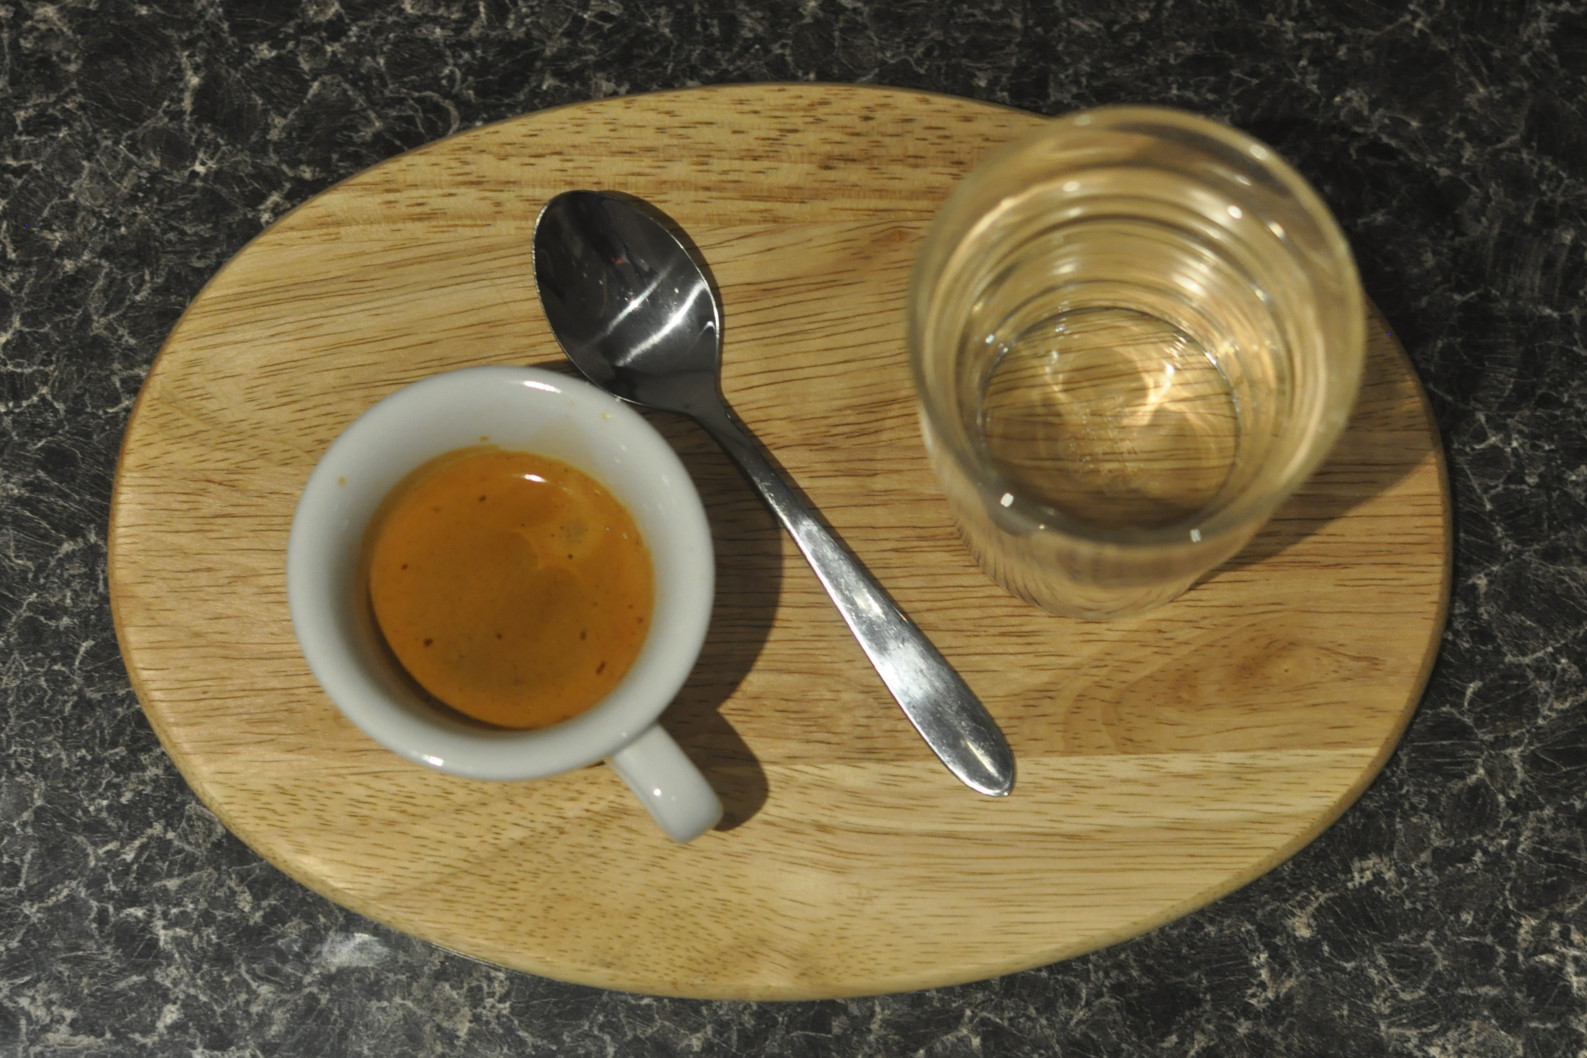 An espresso in a classic white cup, plus a glass of water, on an oval wooden platter, separated by a tea spoon.